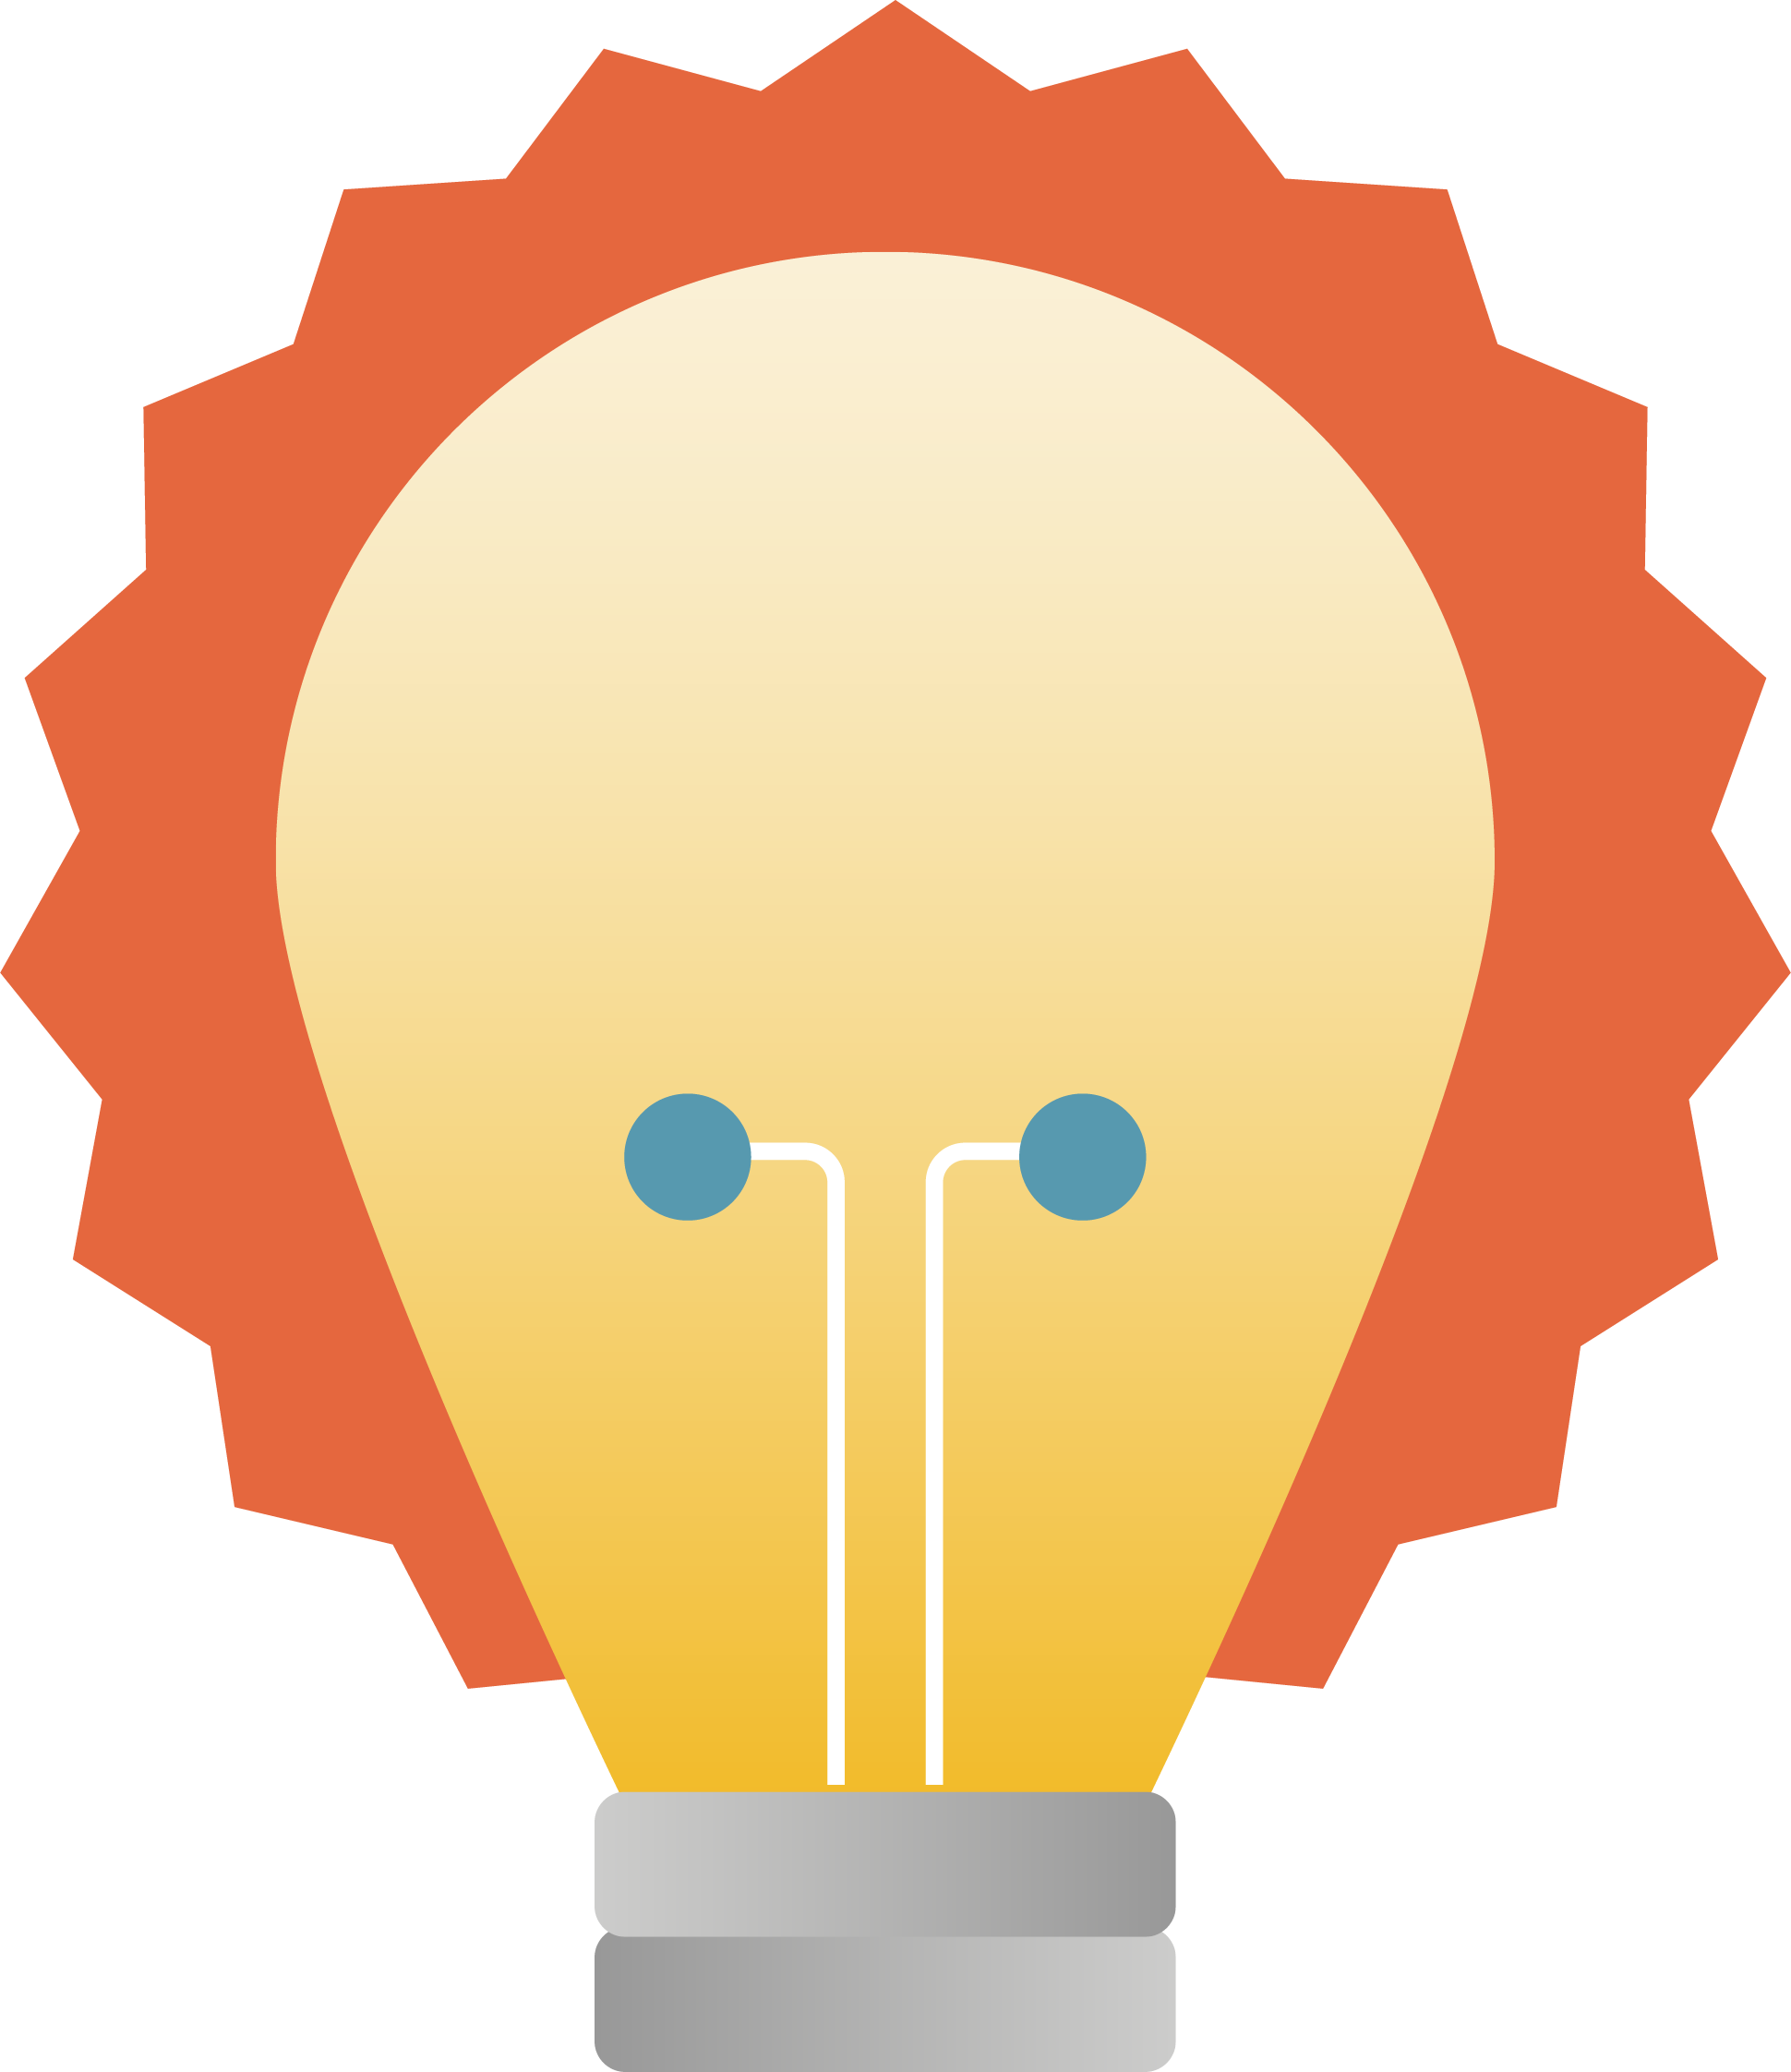 Image of a light bulb